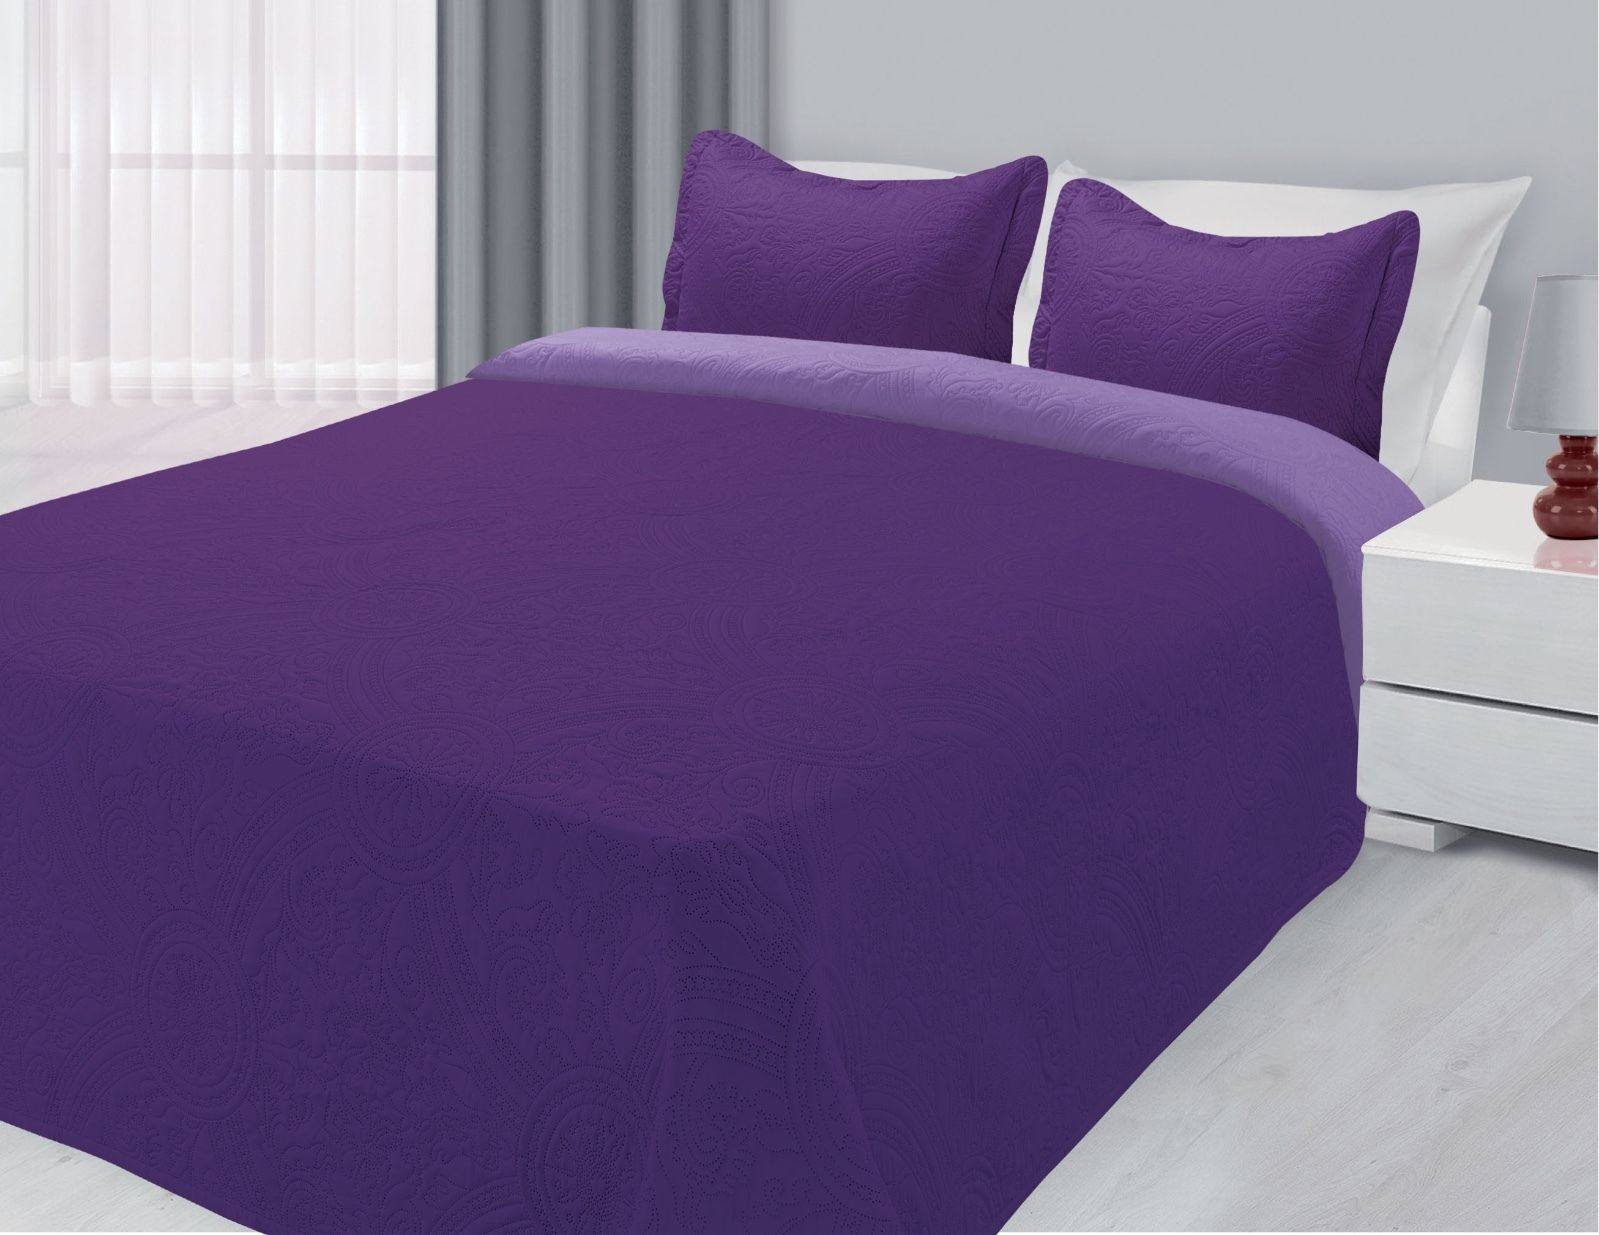 3-Piece Reversible Quilted Bedspread Coverlet Purple & Lilac Twin Size by